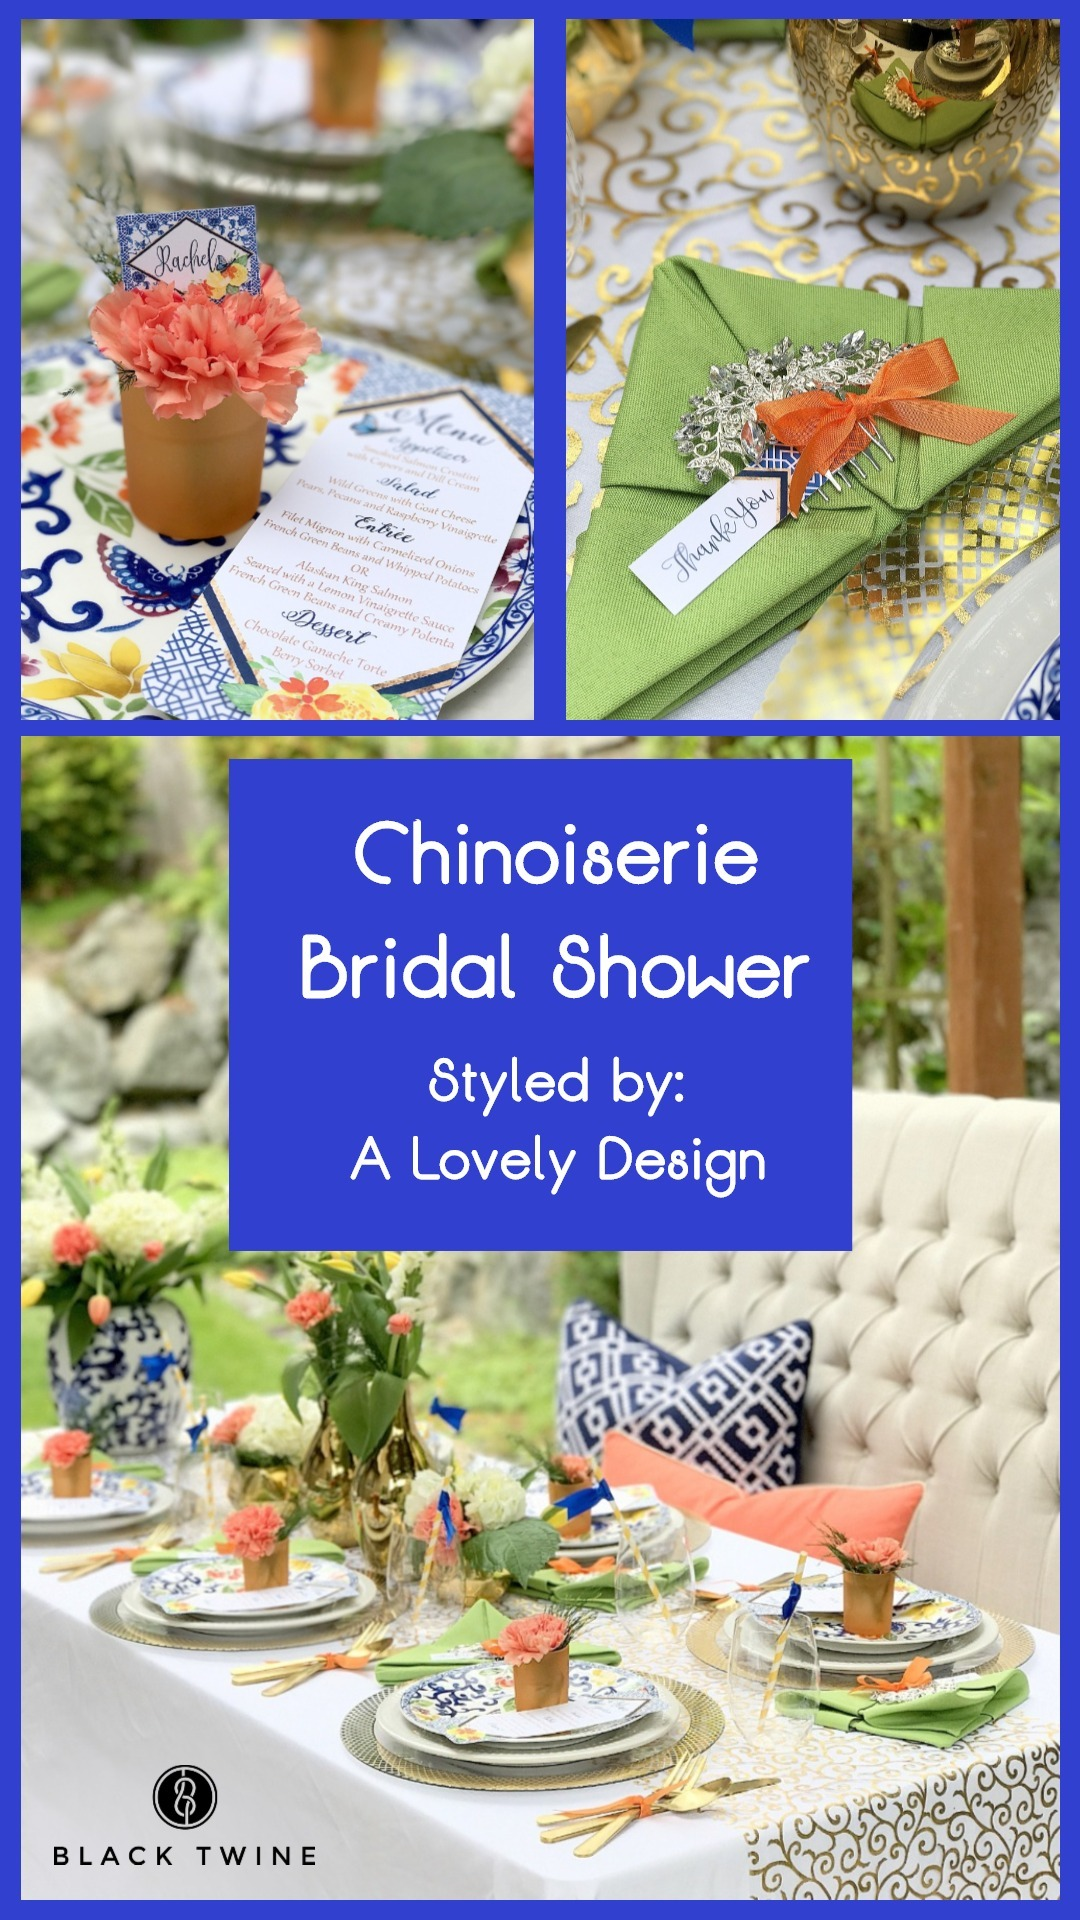 Chinoiserie Bridal Shower Styled by A Lovely Design | Black Twine